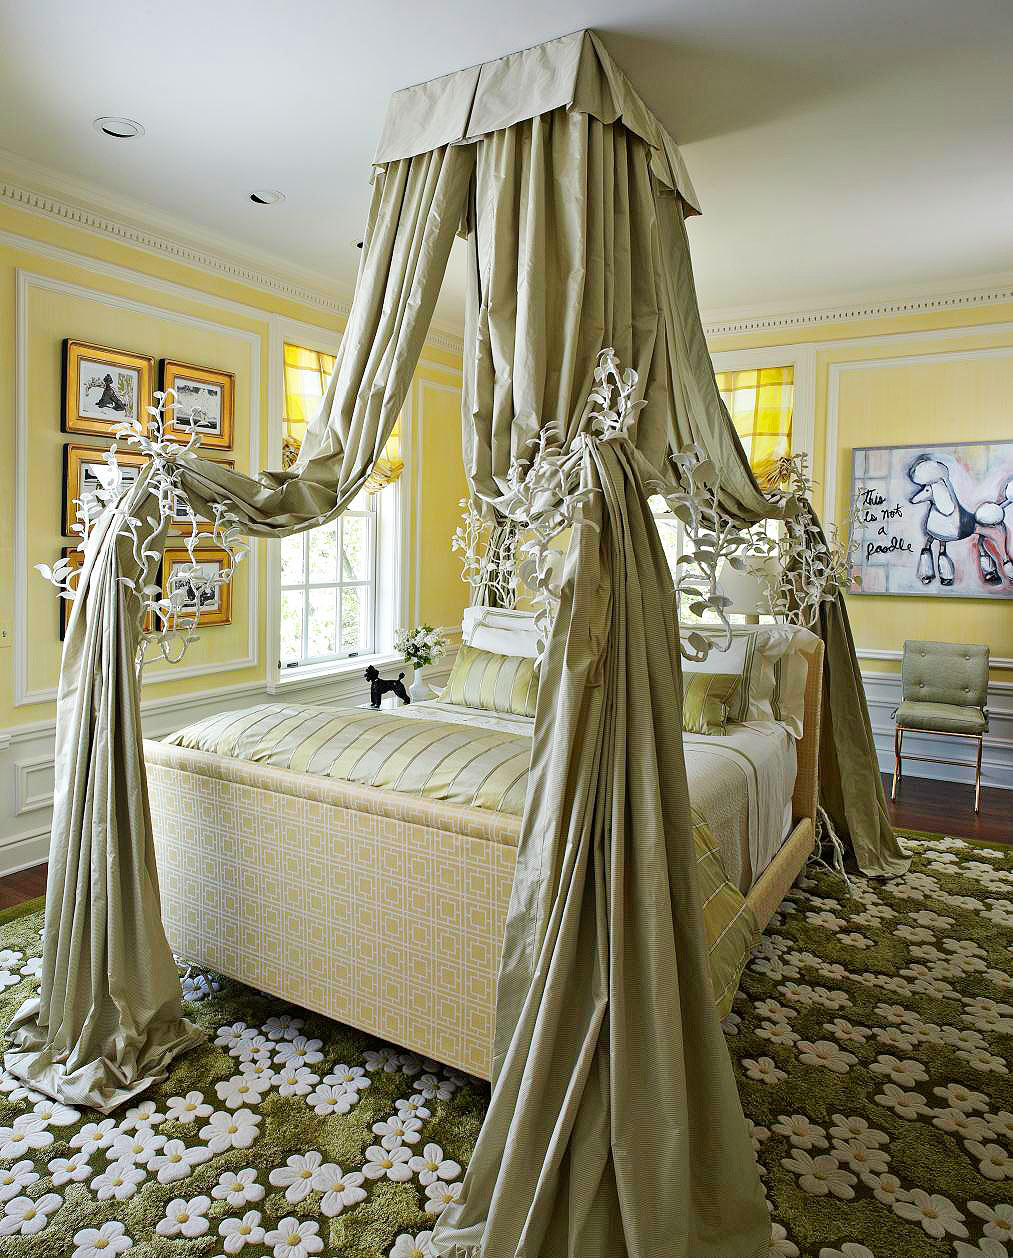 Interior Images Of Decorated Bedrooms beautifully decorated bedrooms from showhouses all over america enlarge